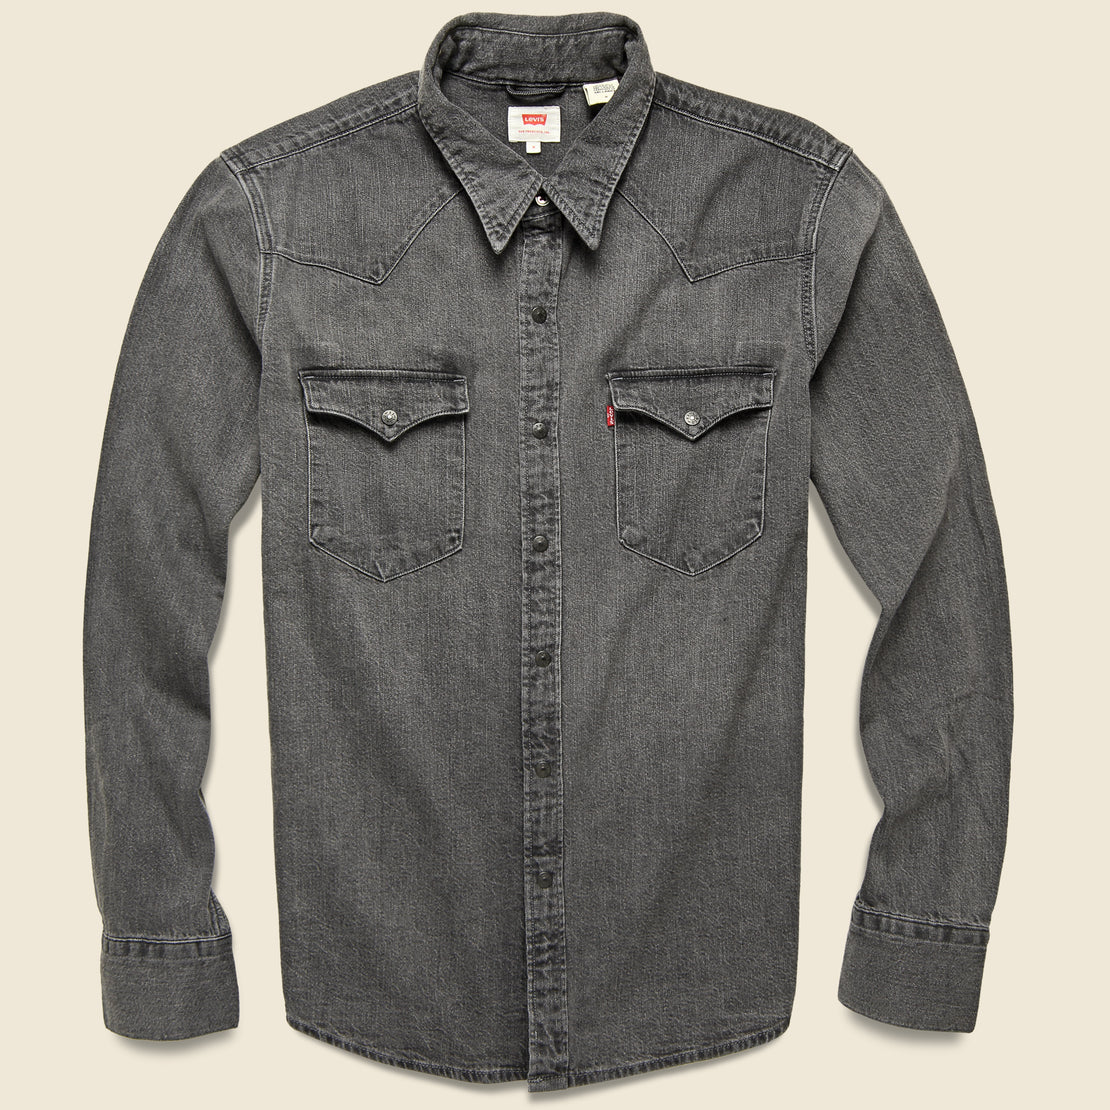 Levis Premium Barstow Western Denim Shirt - Black Worn In